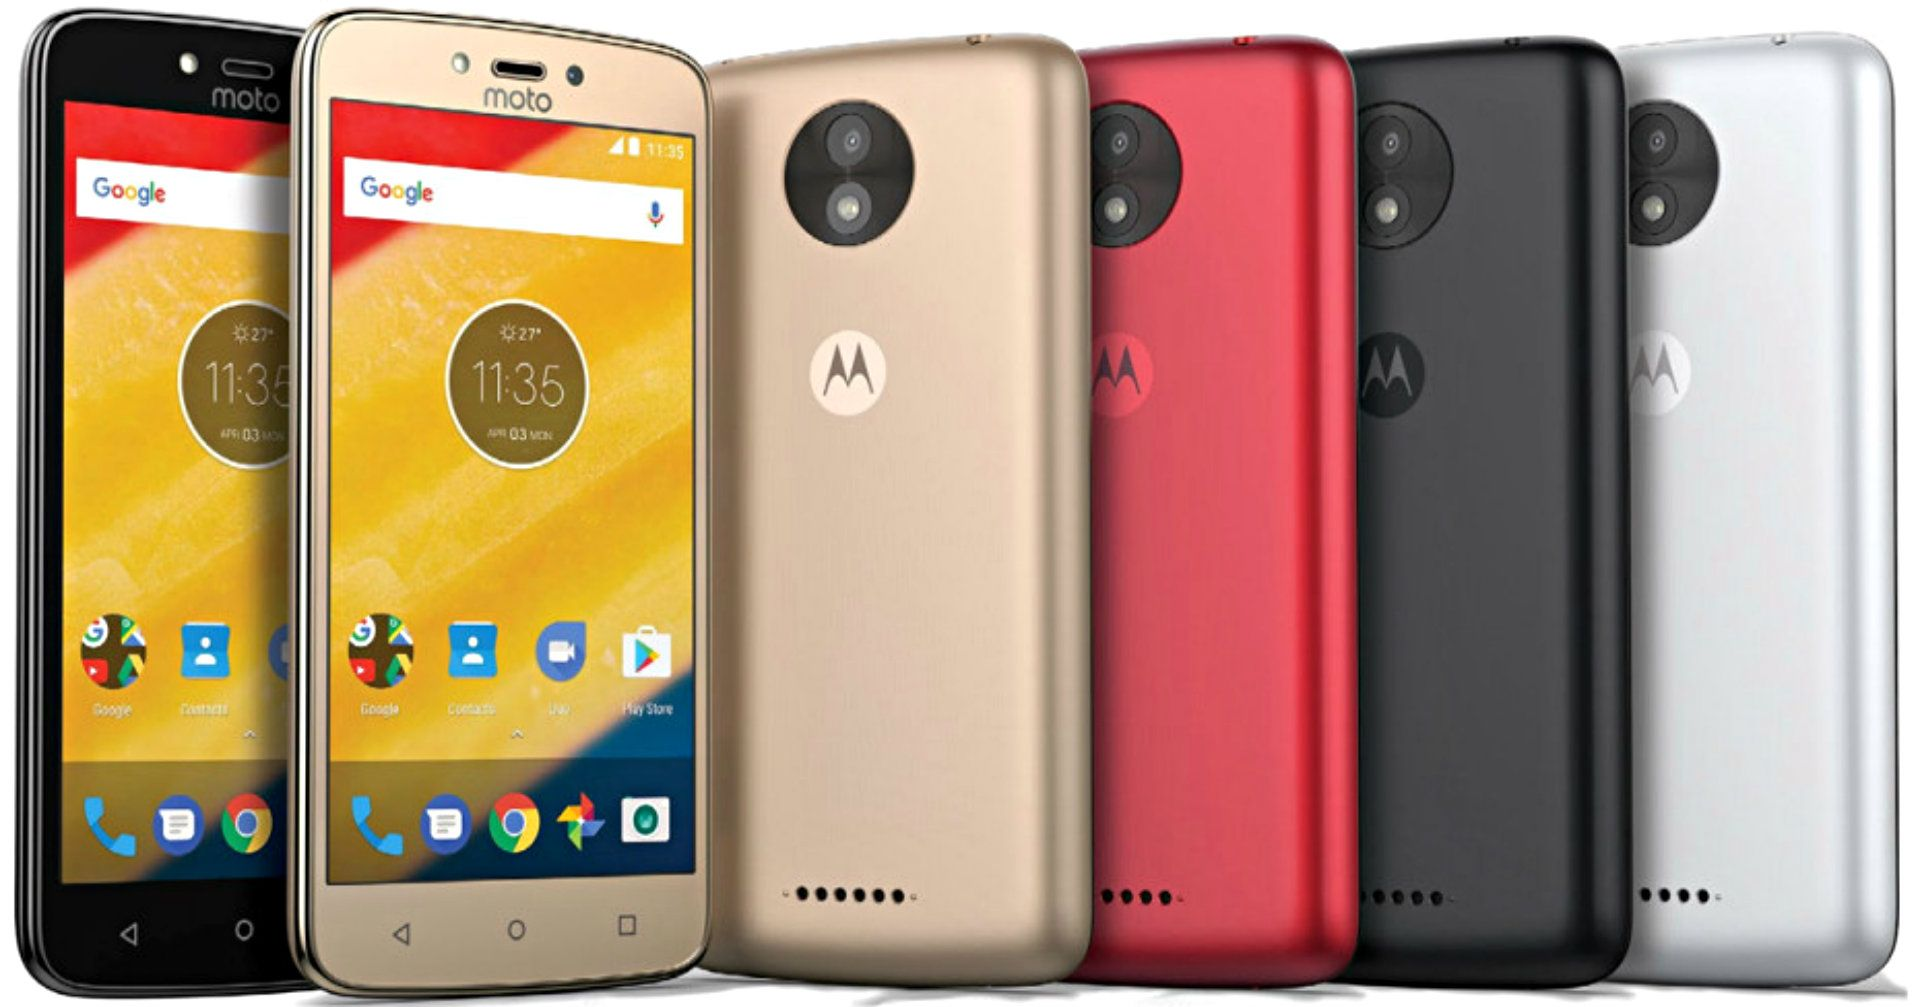 Moto C and Moto C Plus Latest Announcements of UK Price Release Date & Specifications